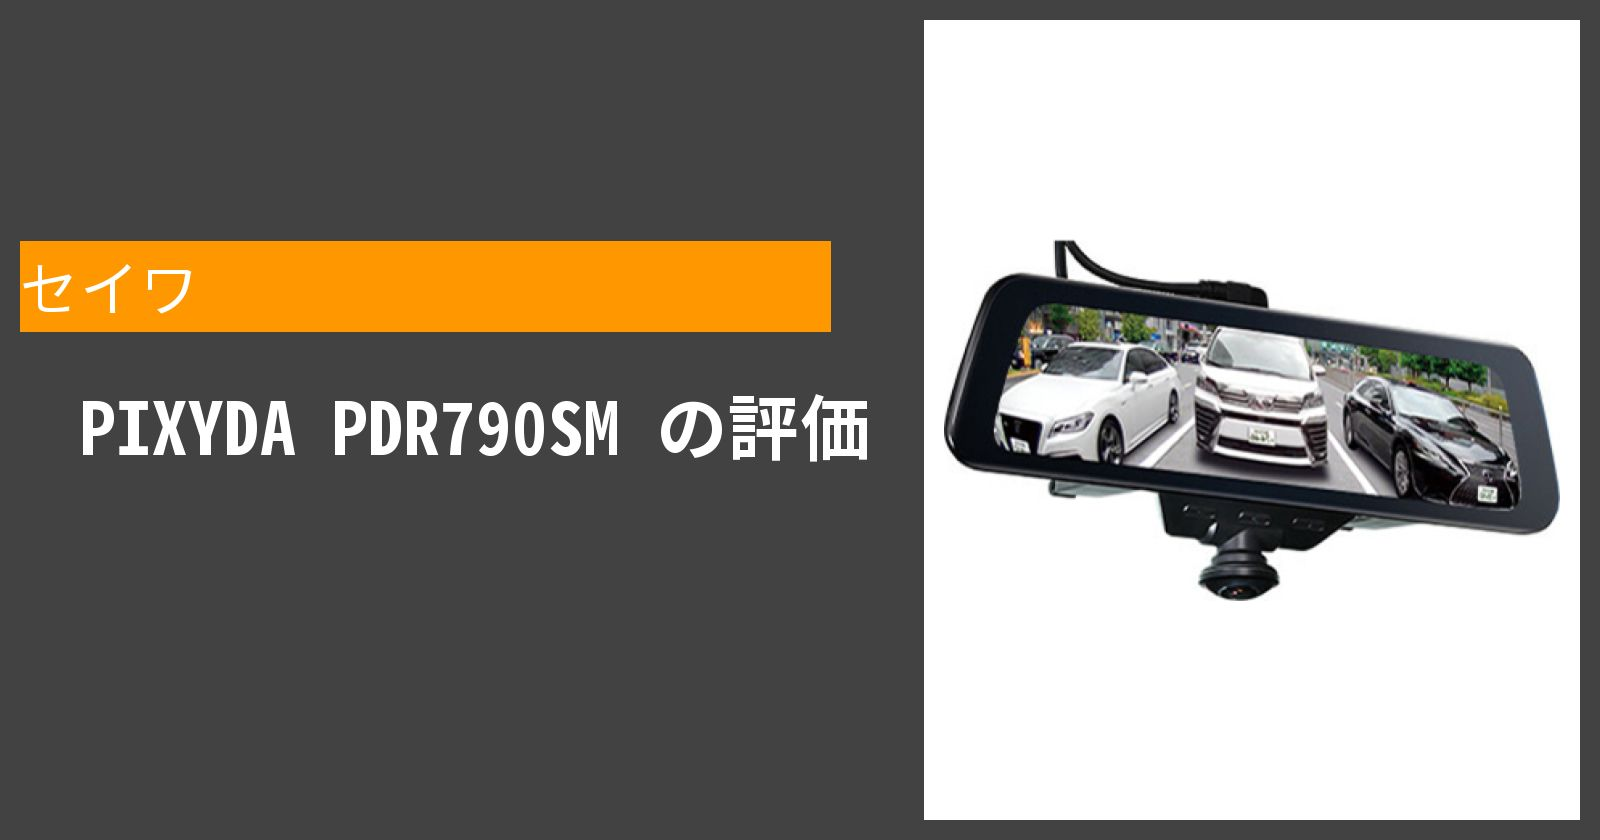 PIXYDA PDR790SMを徹底評価